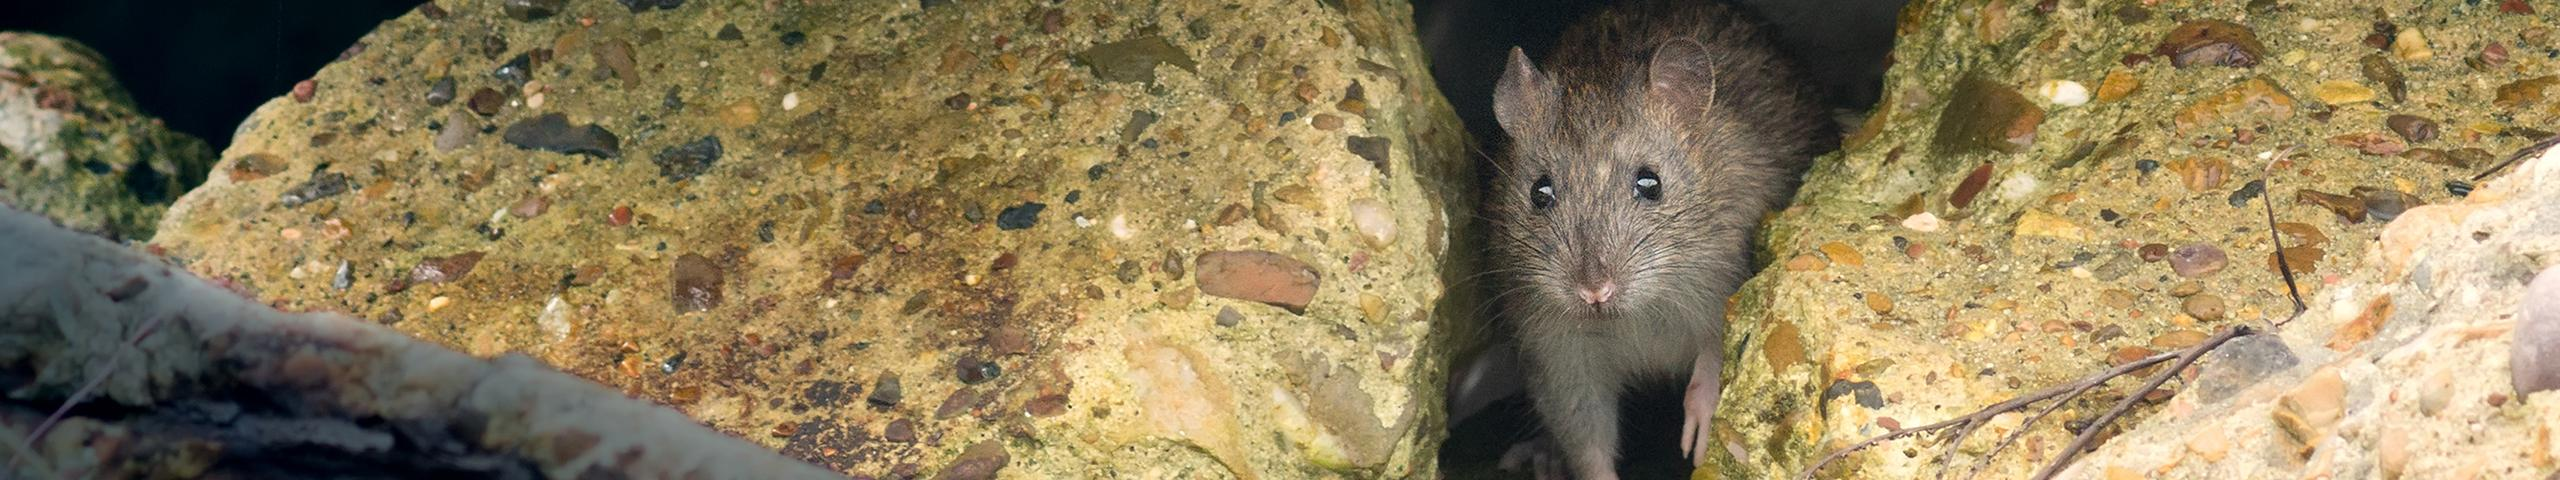 a rat peaking out between two rocks